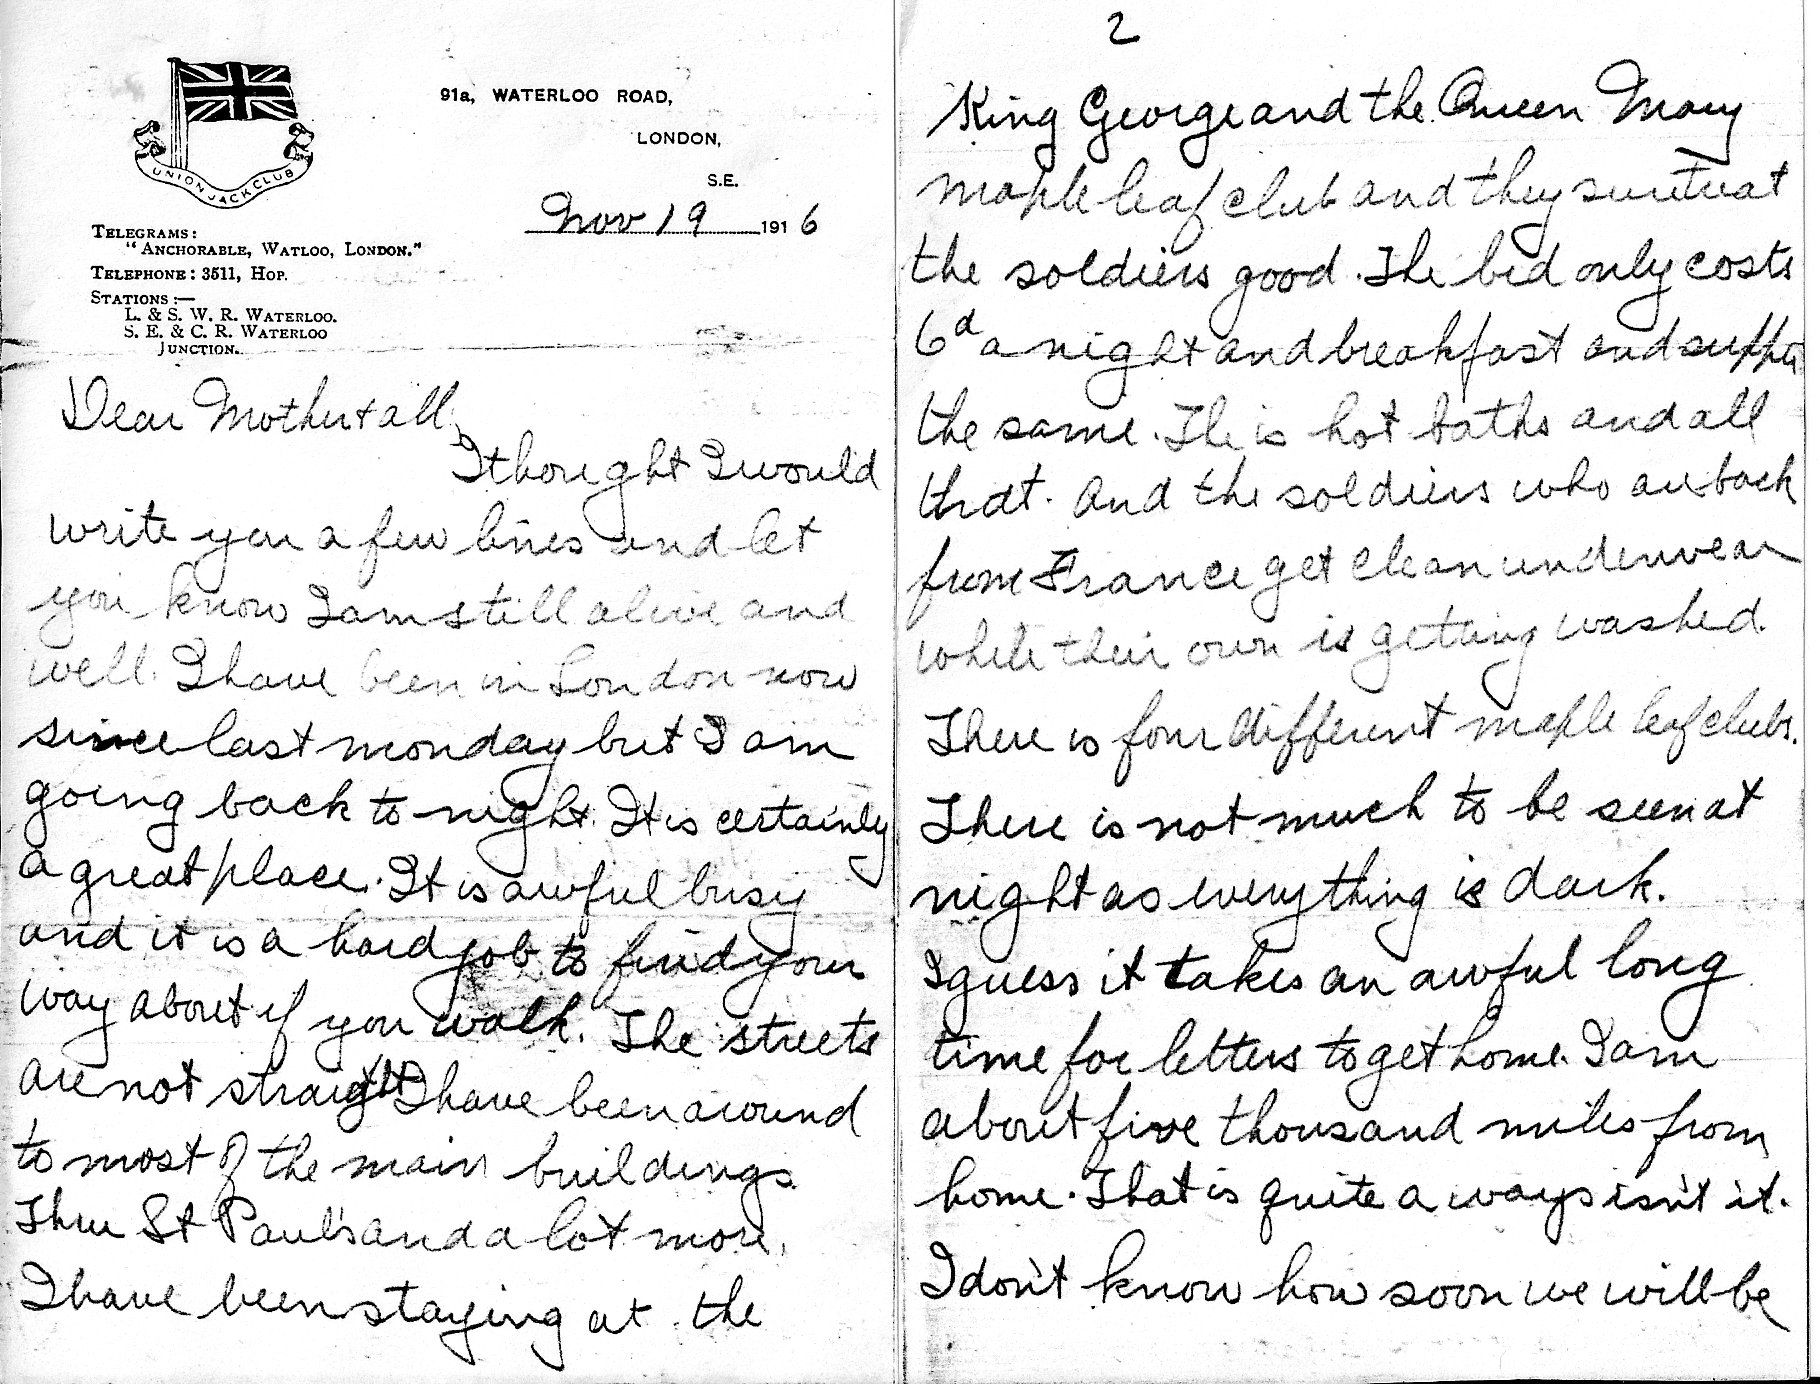 Letter– Page 1 and 2 of a four page letter sent by Pvt AC (Crombie) Bellamy to his Mother and family November 19 1916 from London prior to going to the Front.